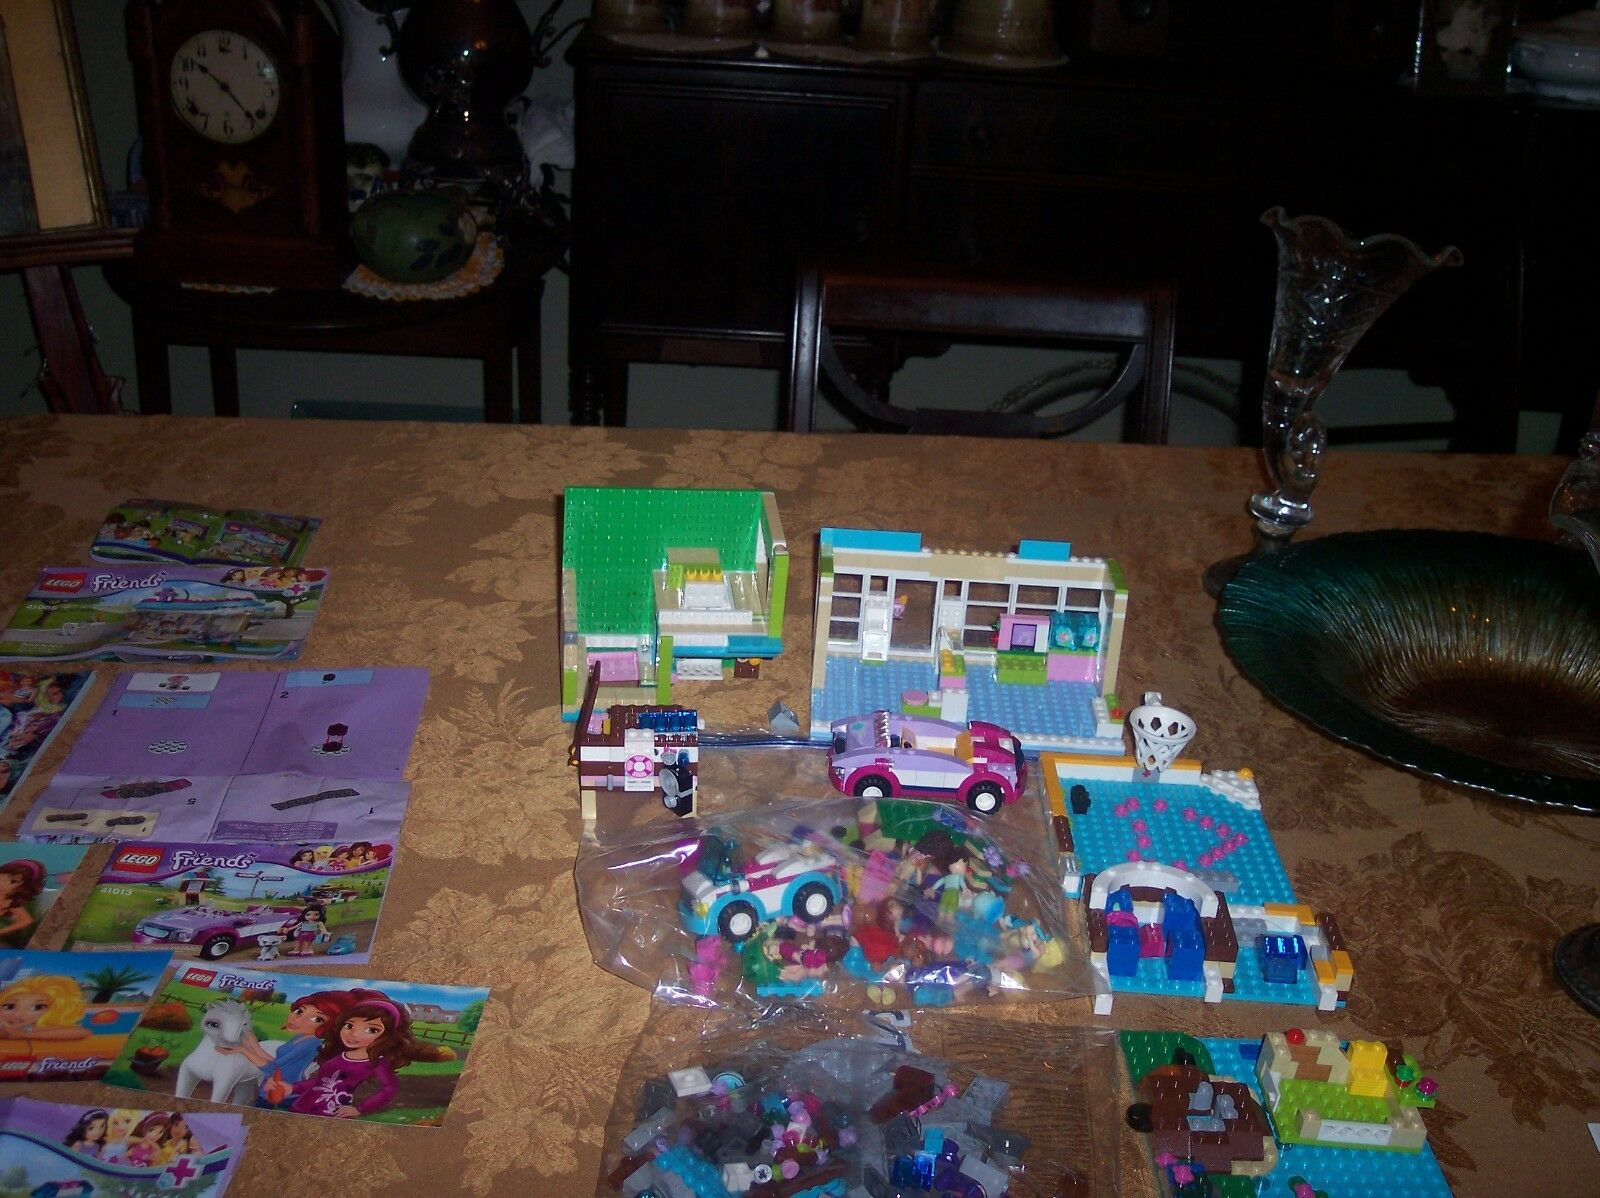 3000 Plus LEGO PIECES & 9 Lego Friend's & autres brochures bon marché VG cond